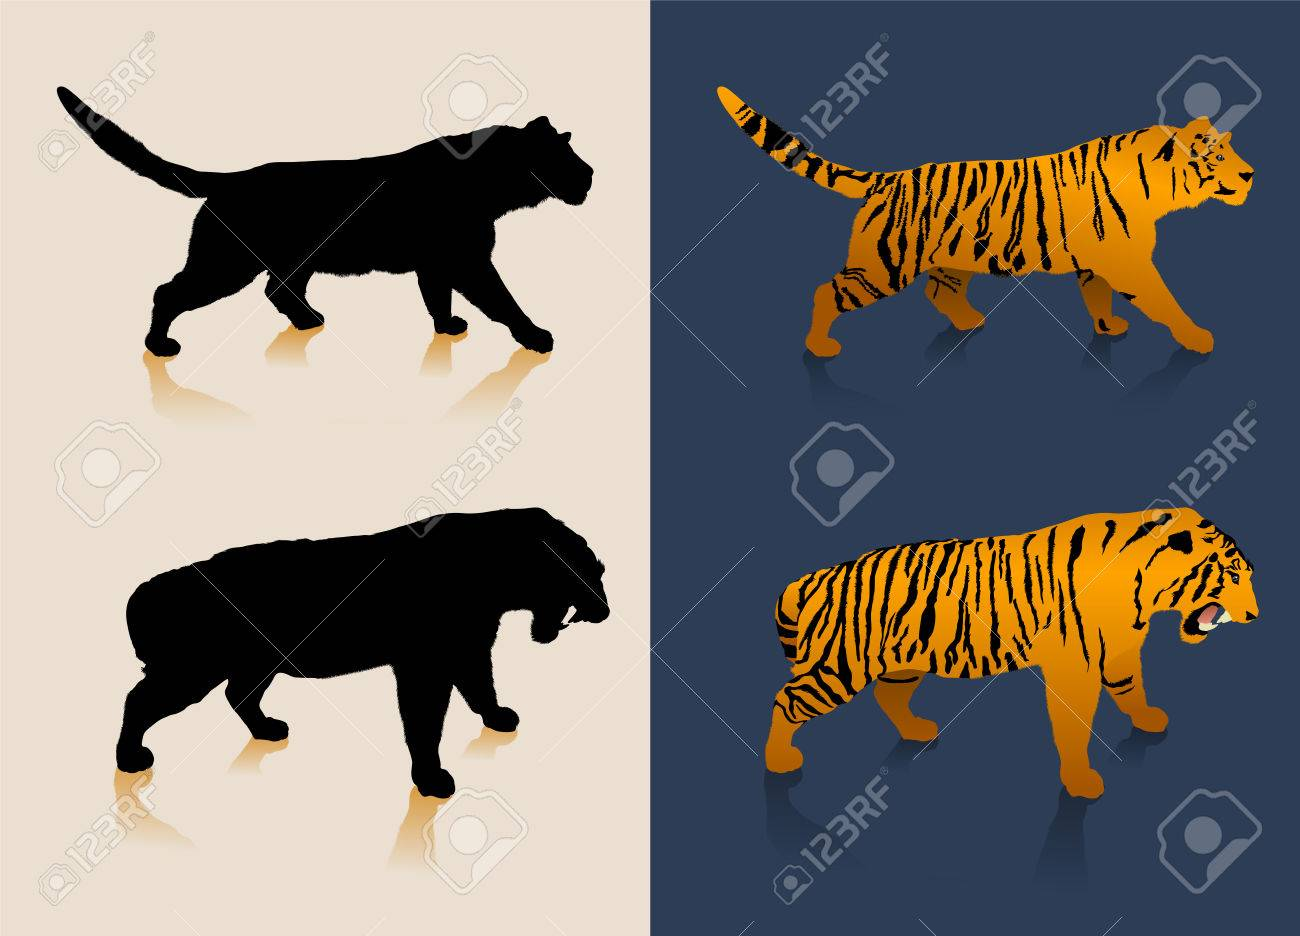 Black and white tiger silhouettes and color images Stock Vector - 5798809